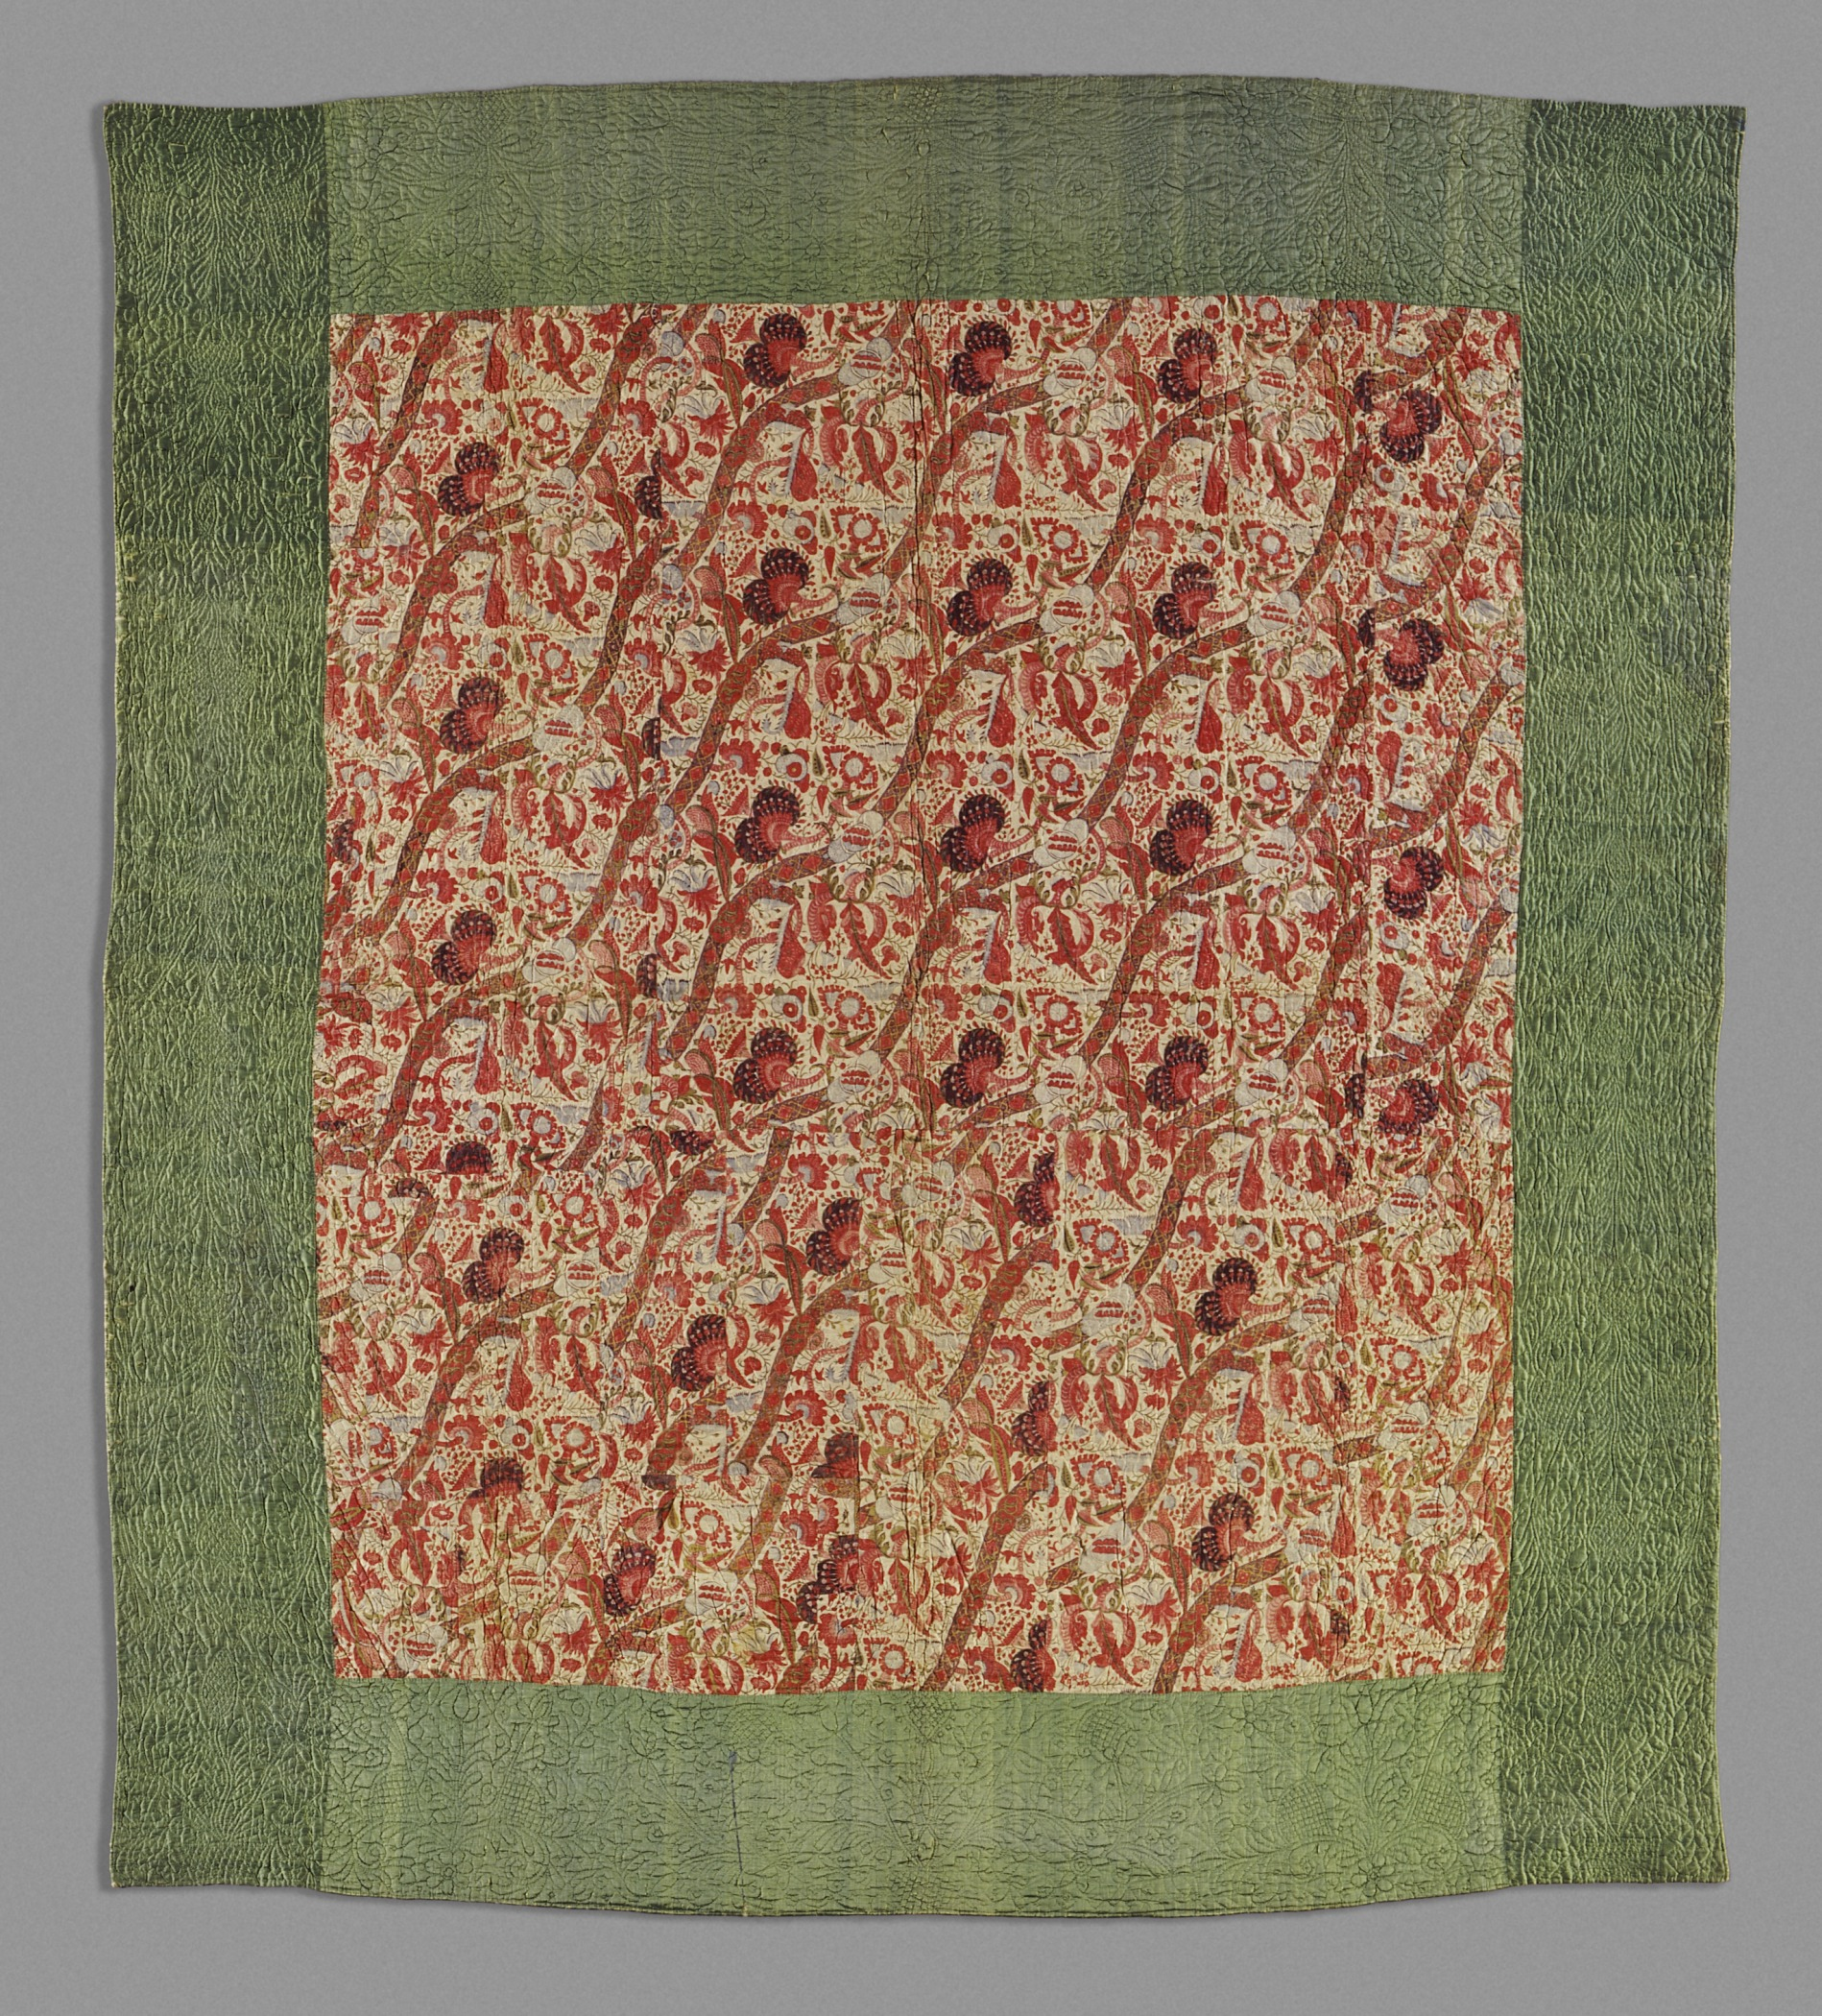 Whole cloth quilt with an orange print and a wide green border